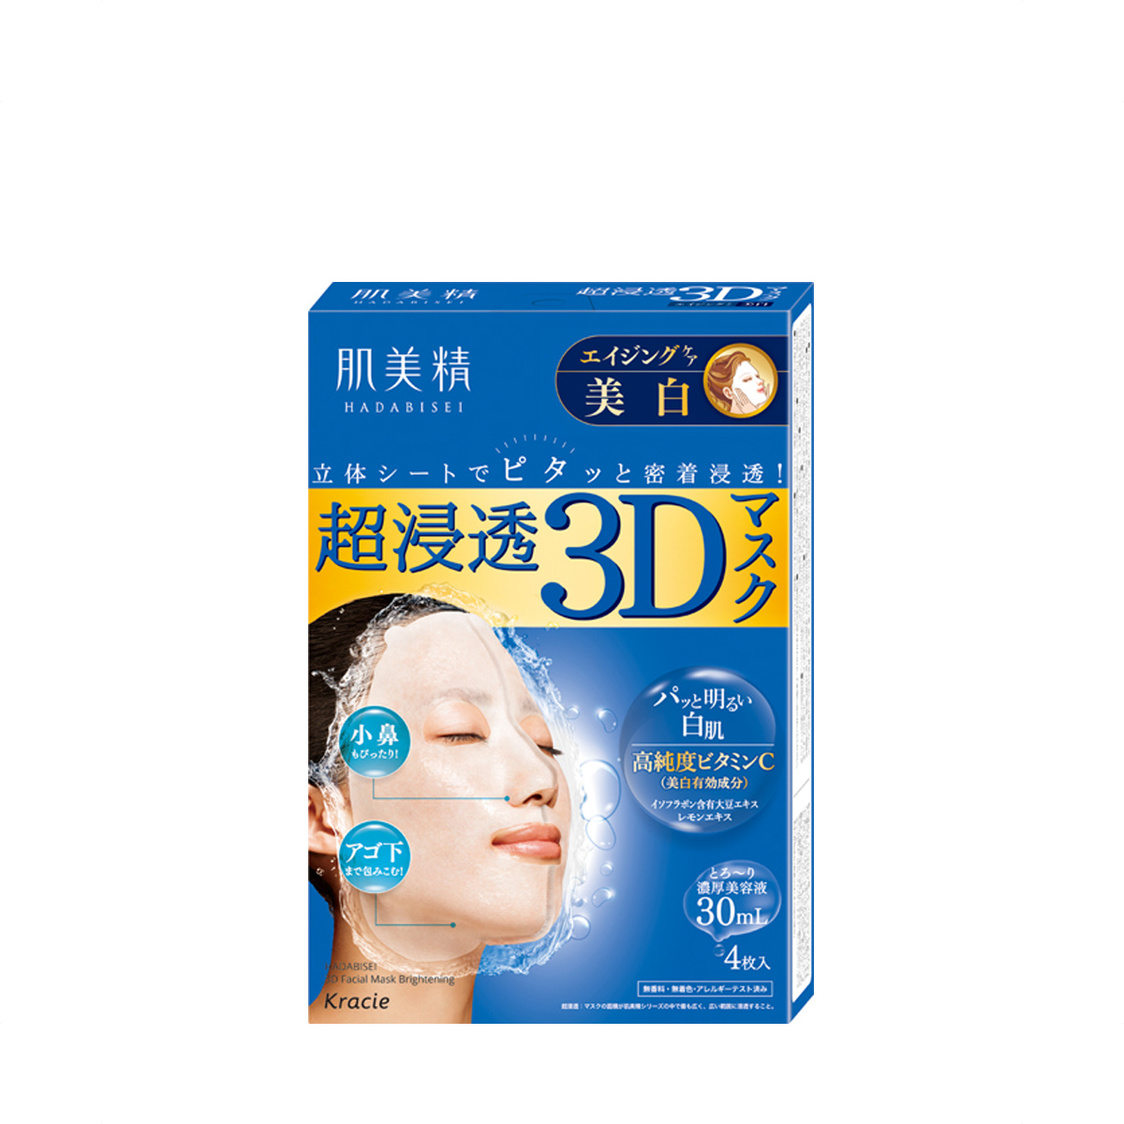 3D Face Mask Aging-Care Brightening 4 Pieces